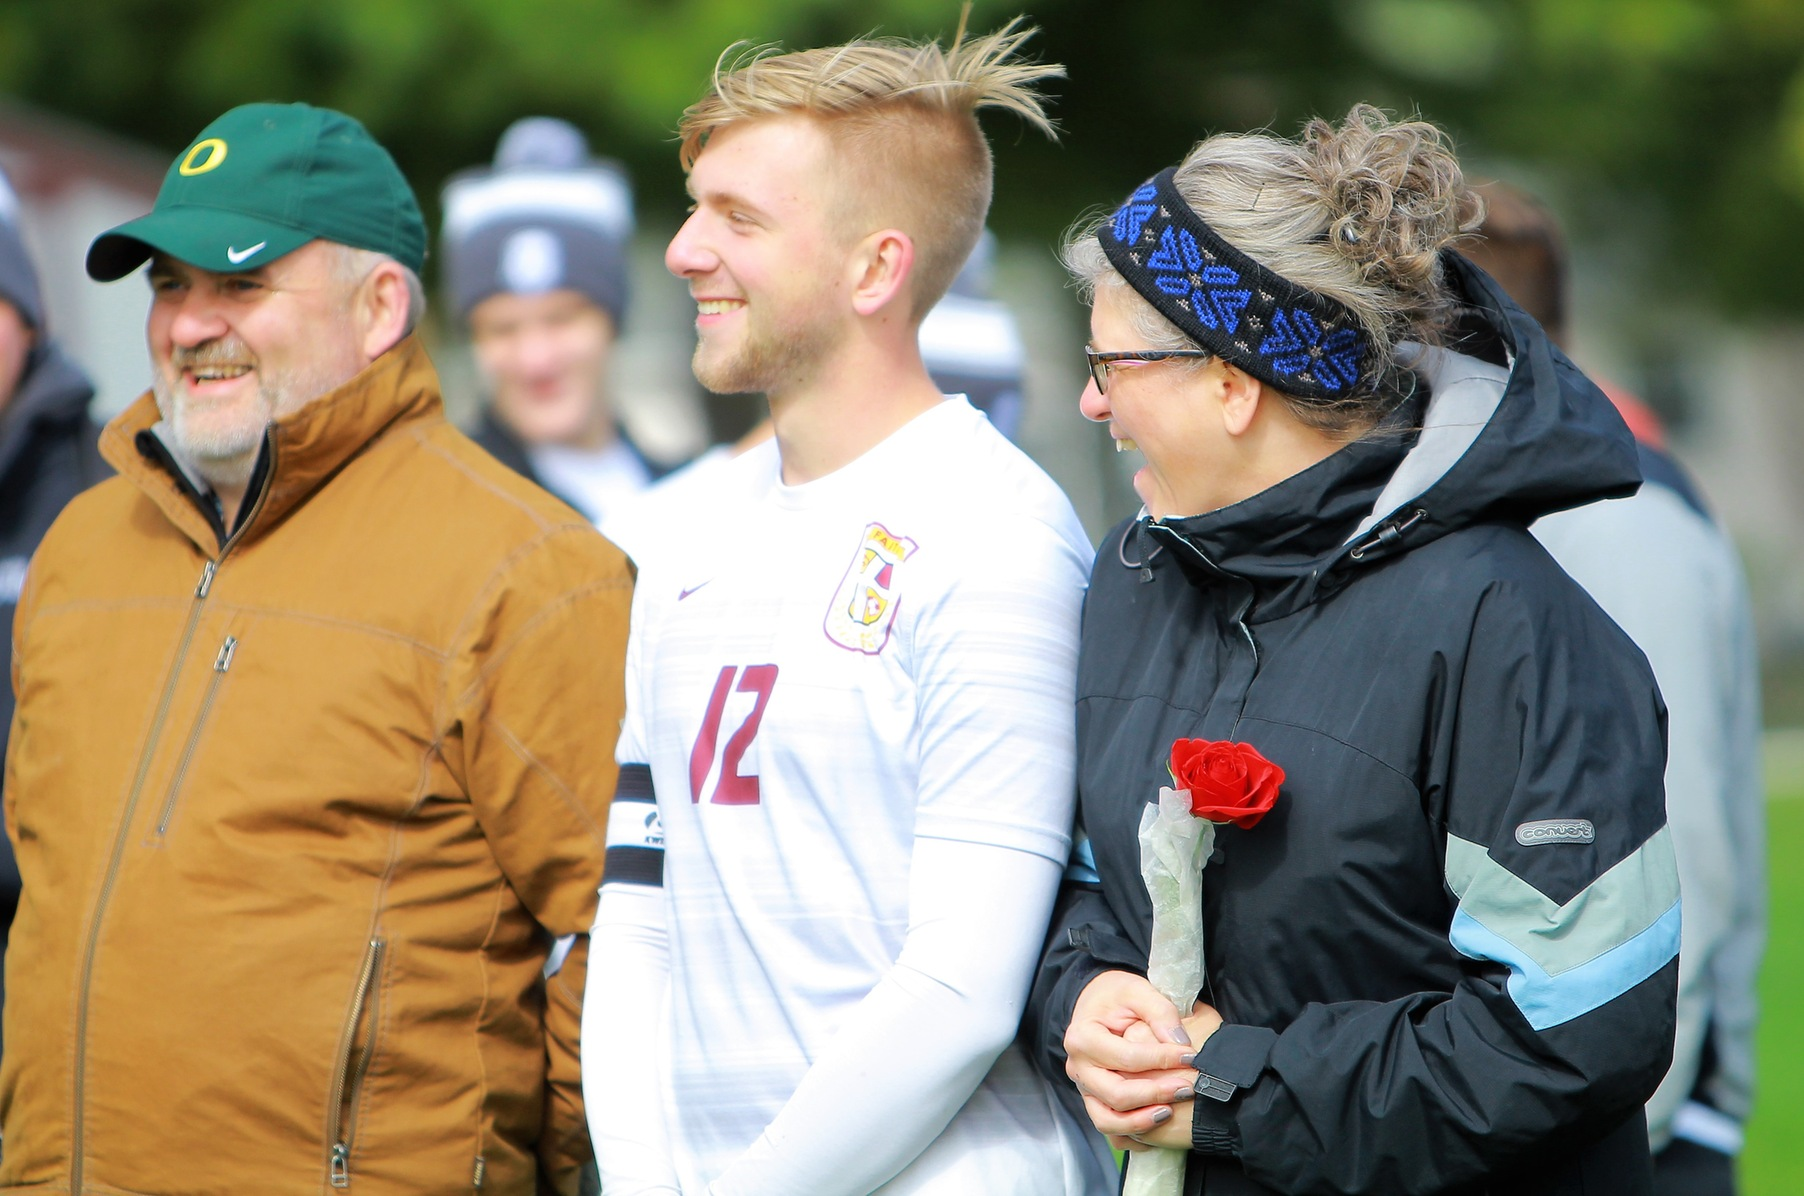 Faith honors its only senior men's soccer player, Caleb Sturgis, on Senior Day